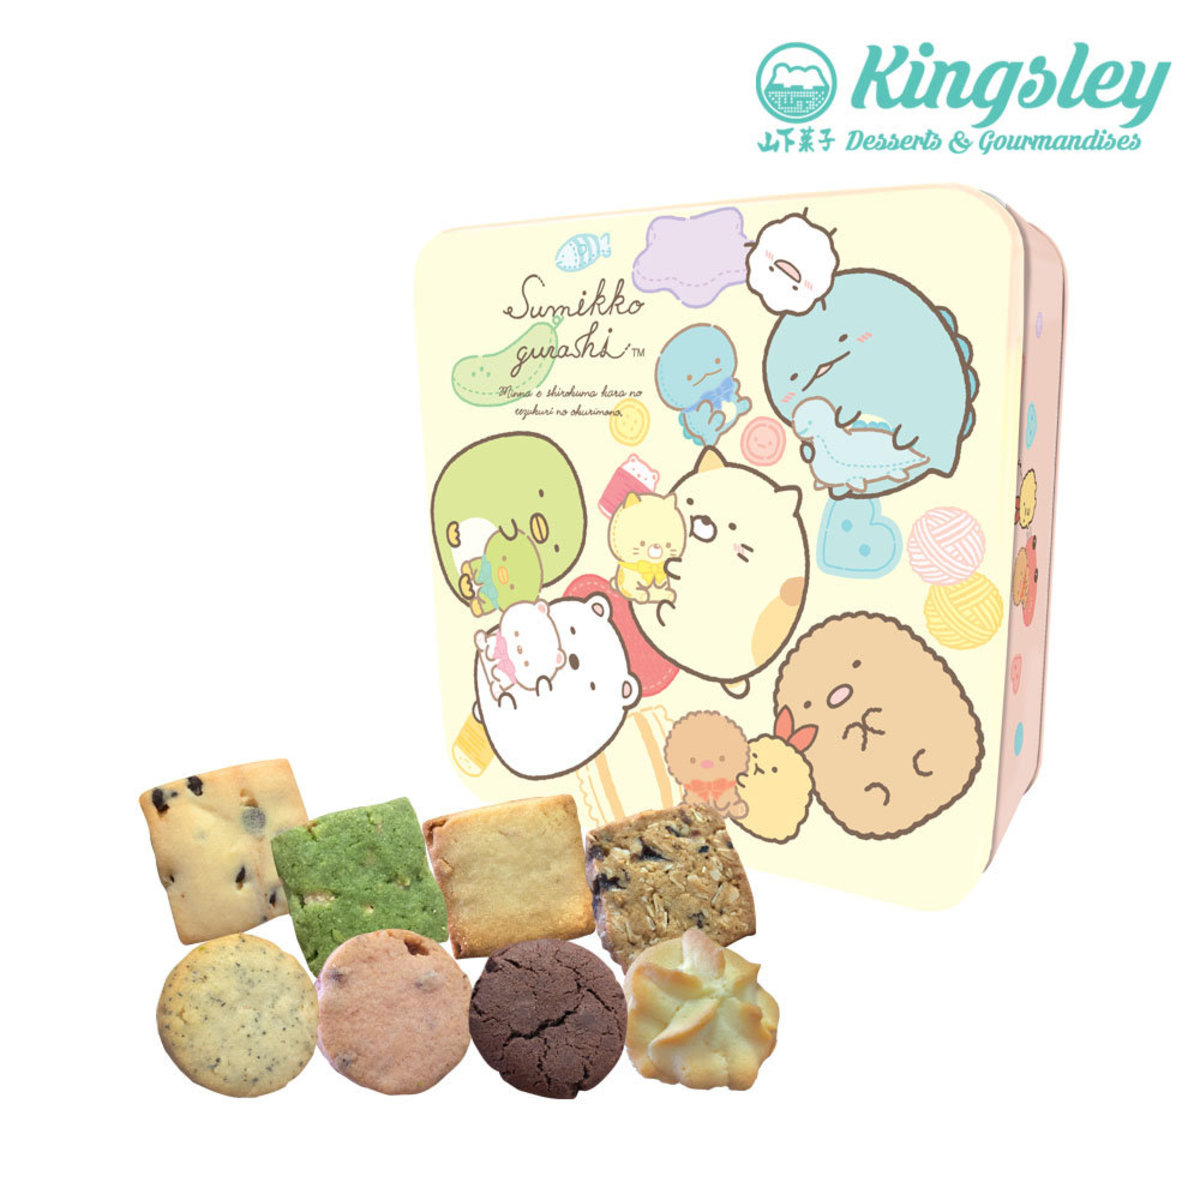 1 Unit - Sumikko Gurashi Tin with Mixed Cookies【Self Pick-up Only】